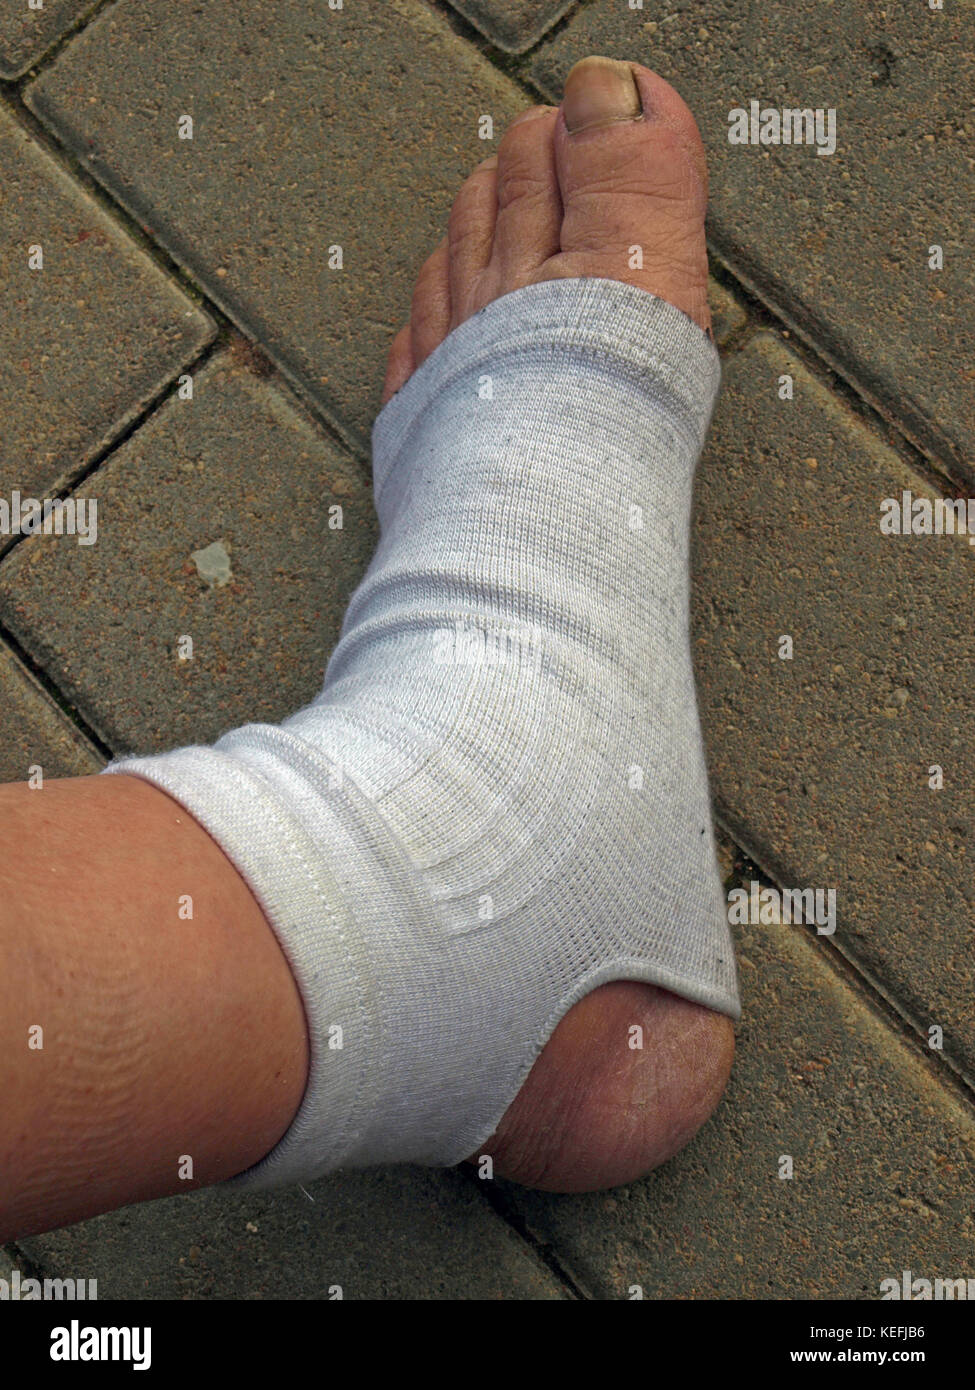 Leg with the orthosis for foot and ankle - Stock Image